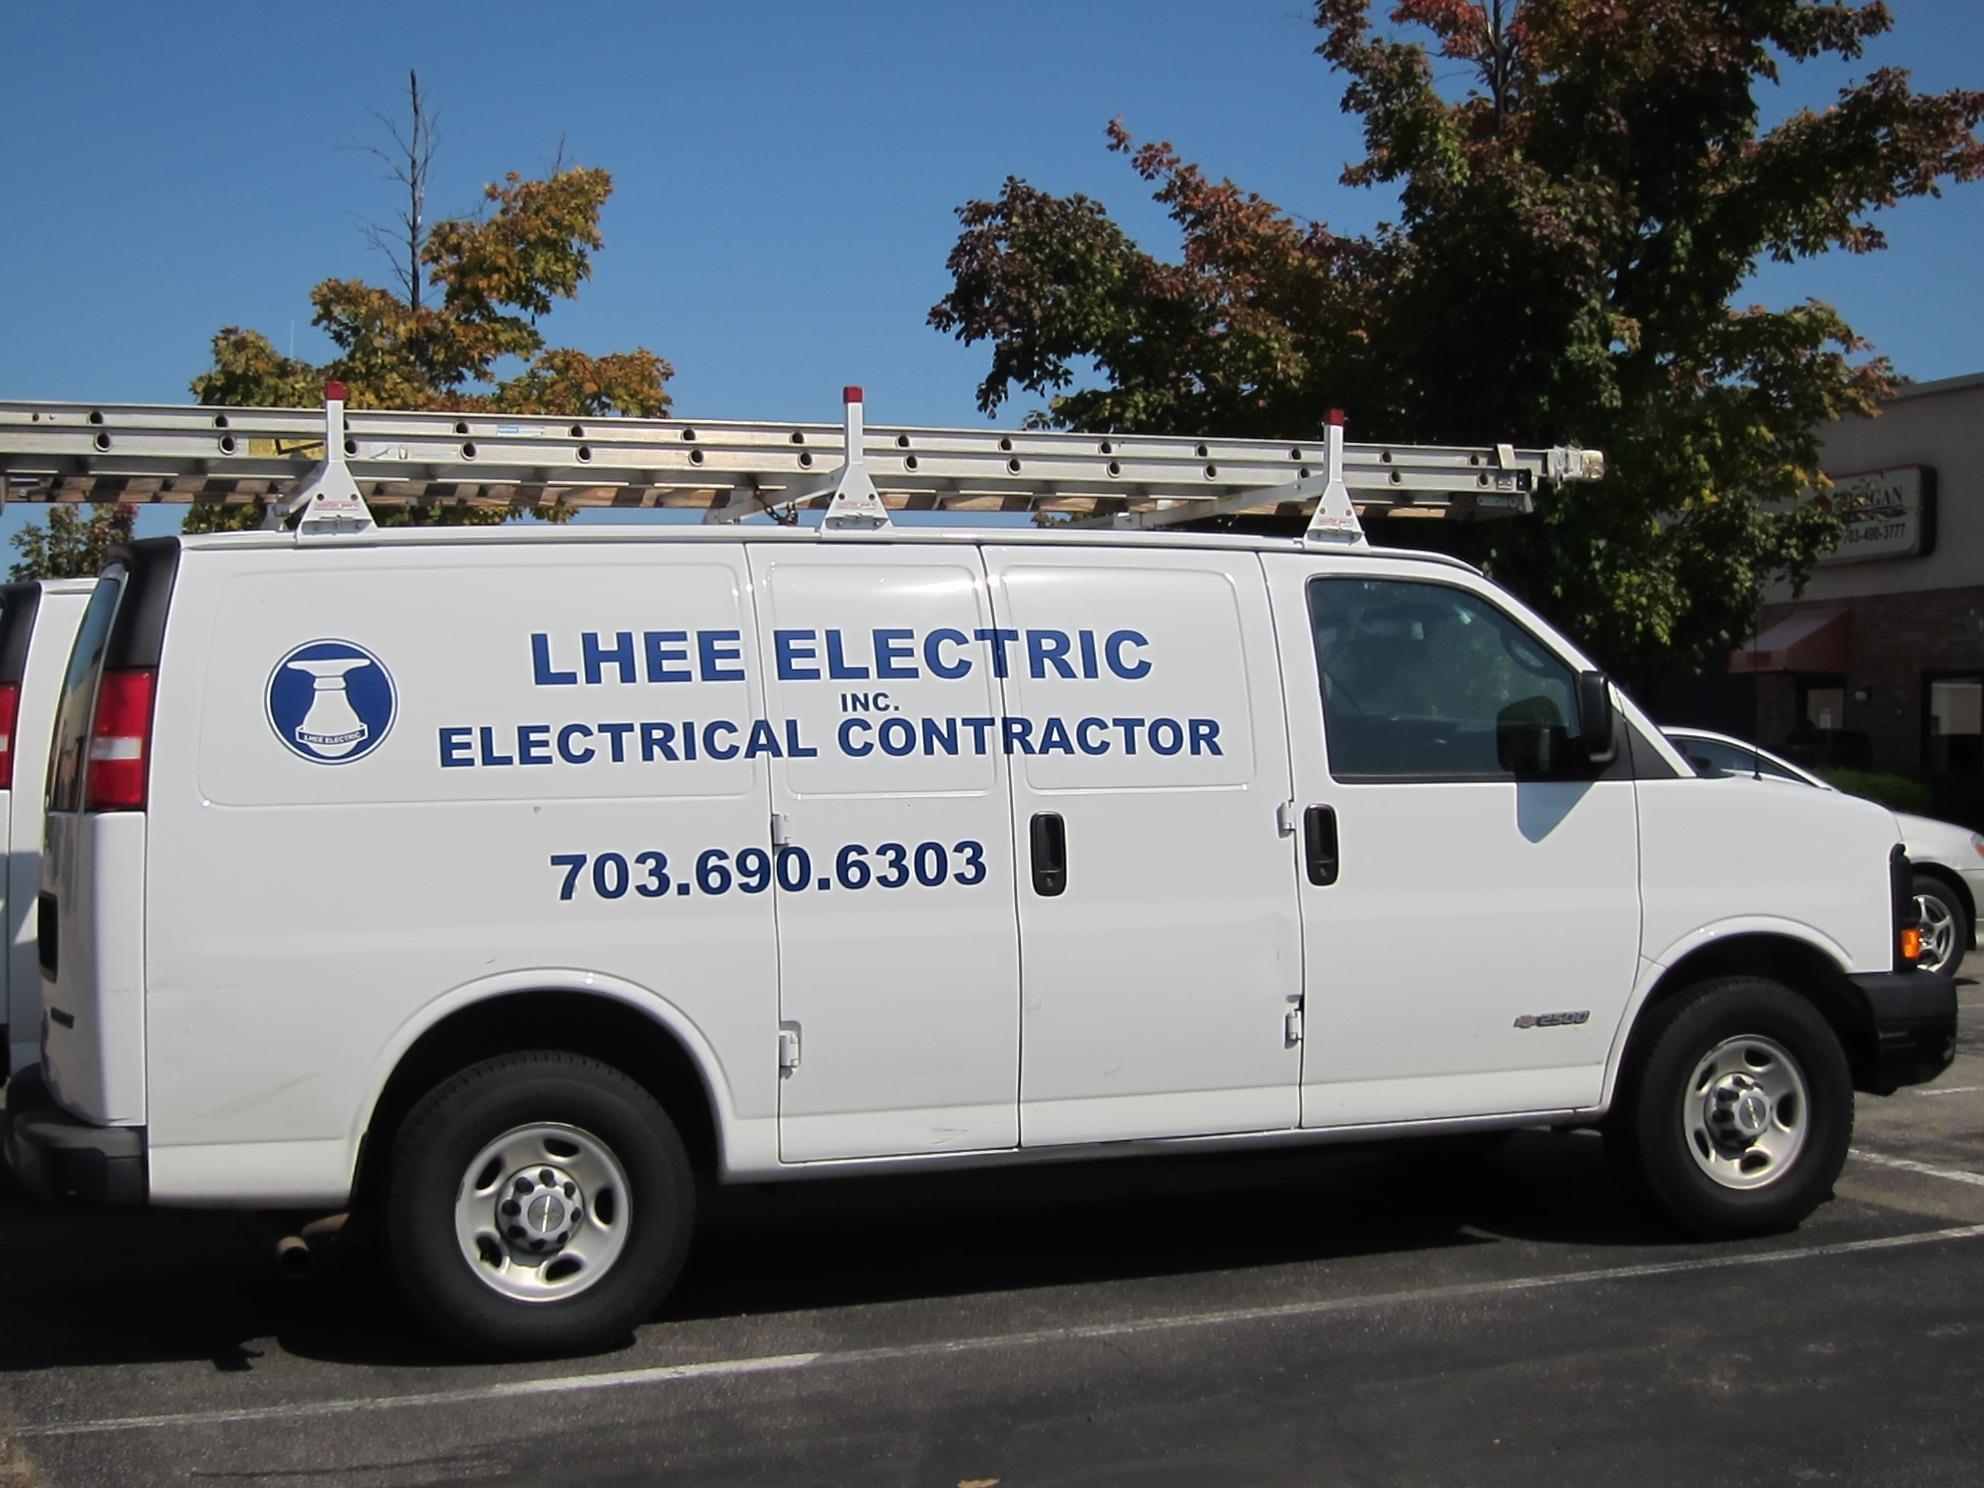 Lhee Electric Co Inc In Woodbridge Va 703 690 6303